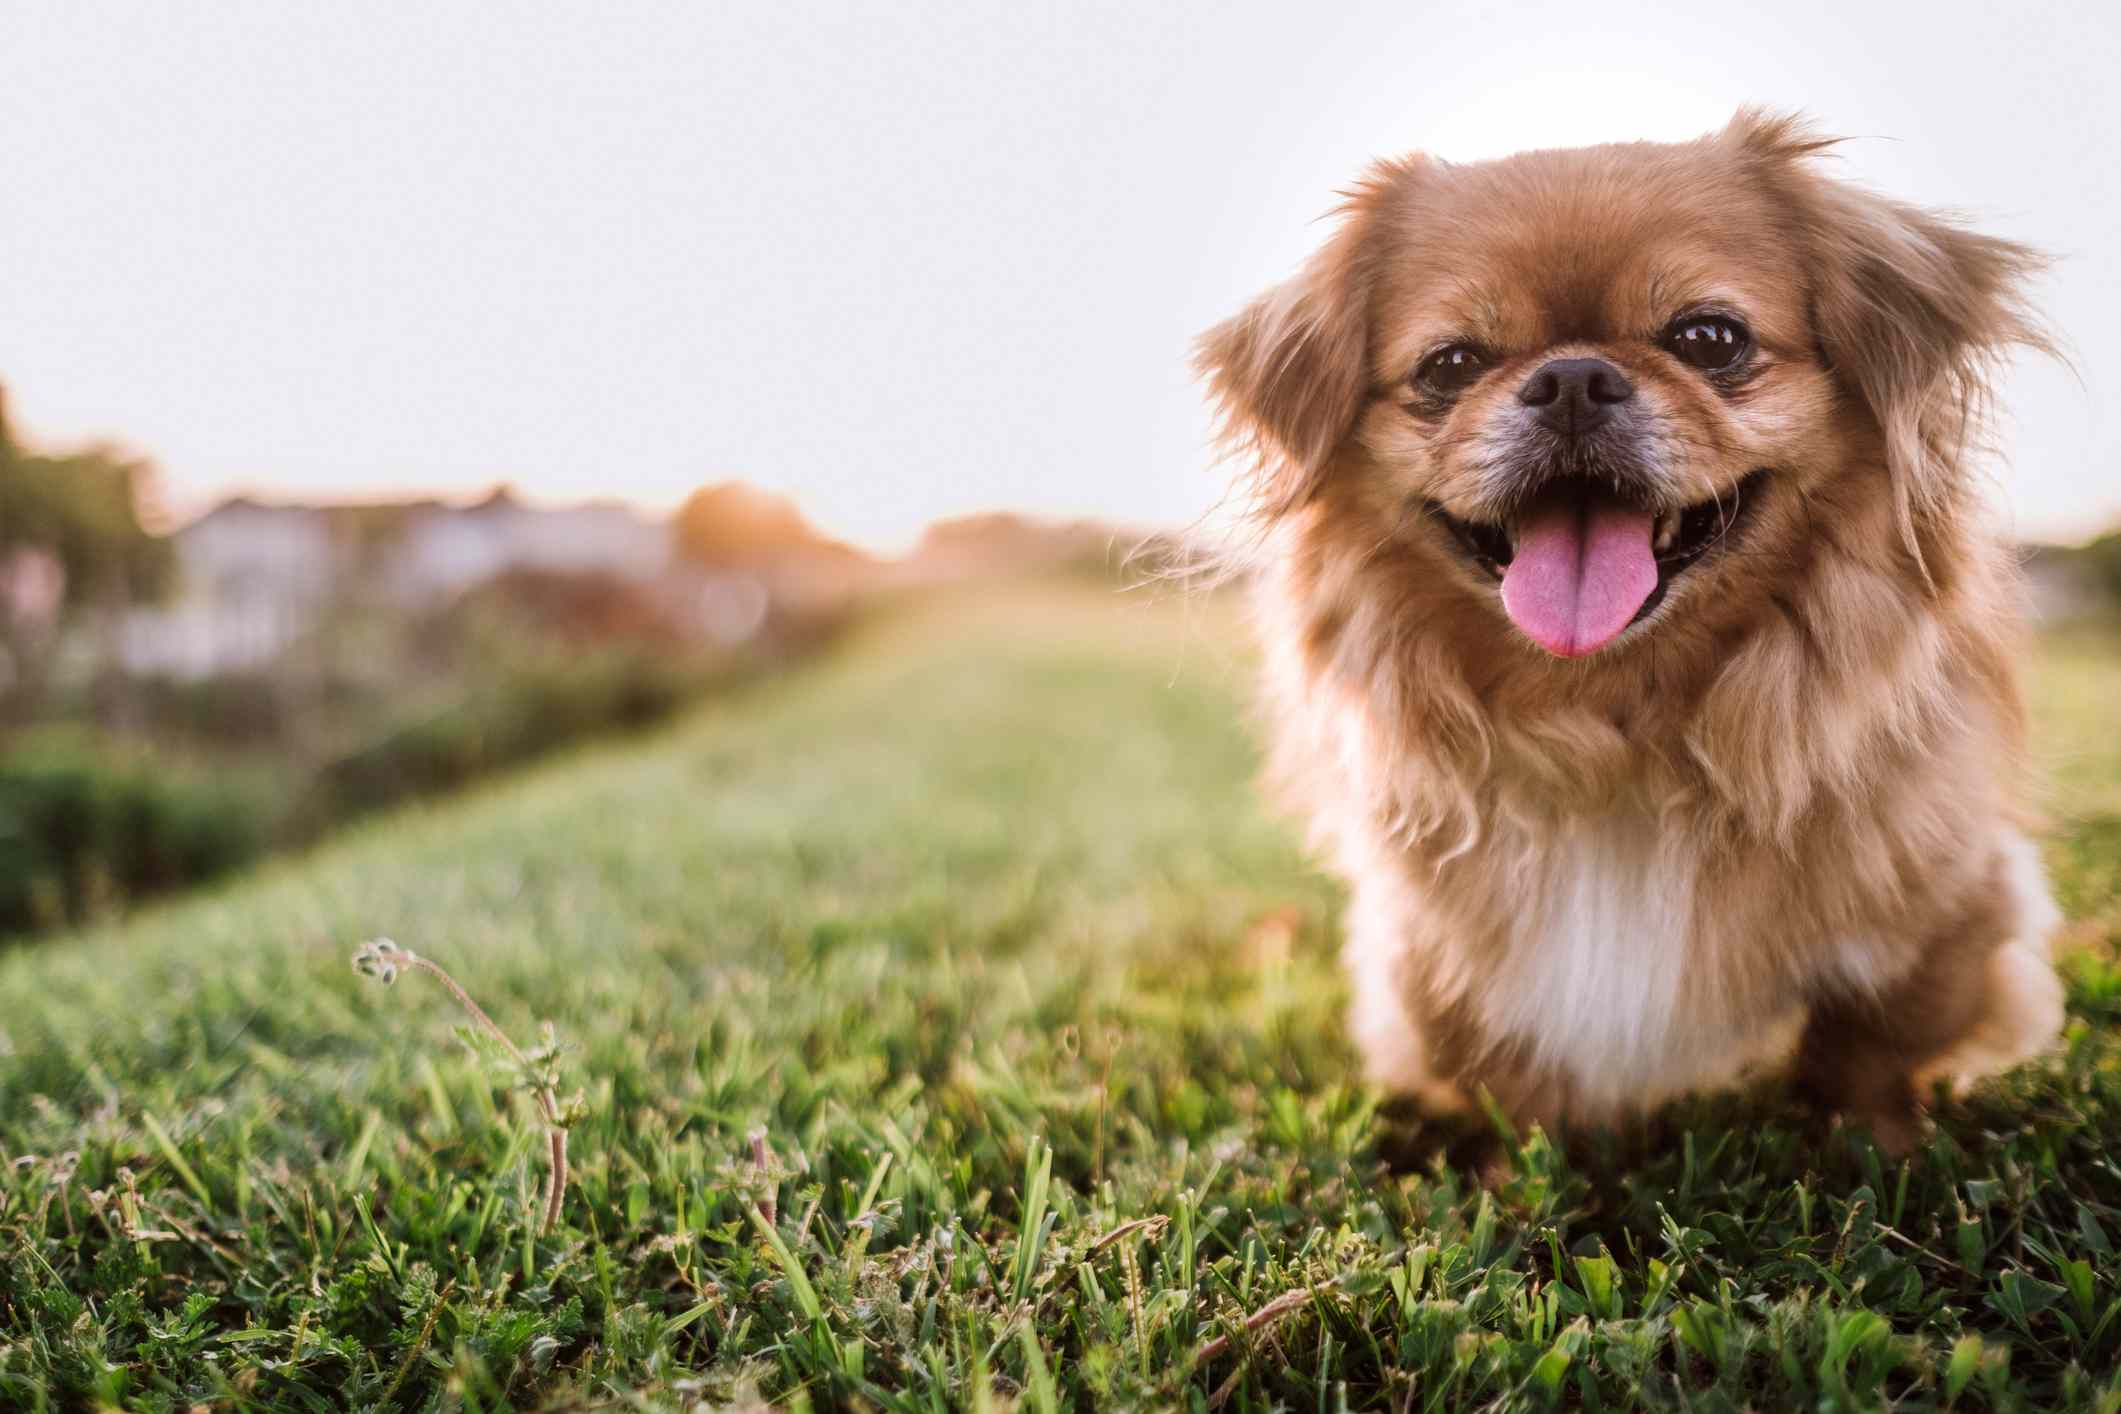 A blond Pekingese dog running in the grass with its tongue out.